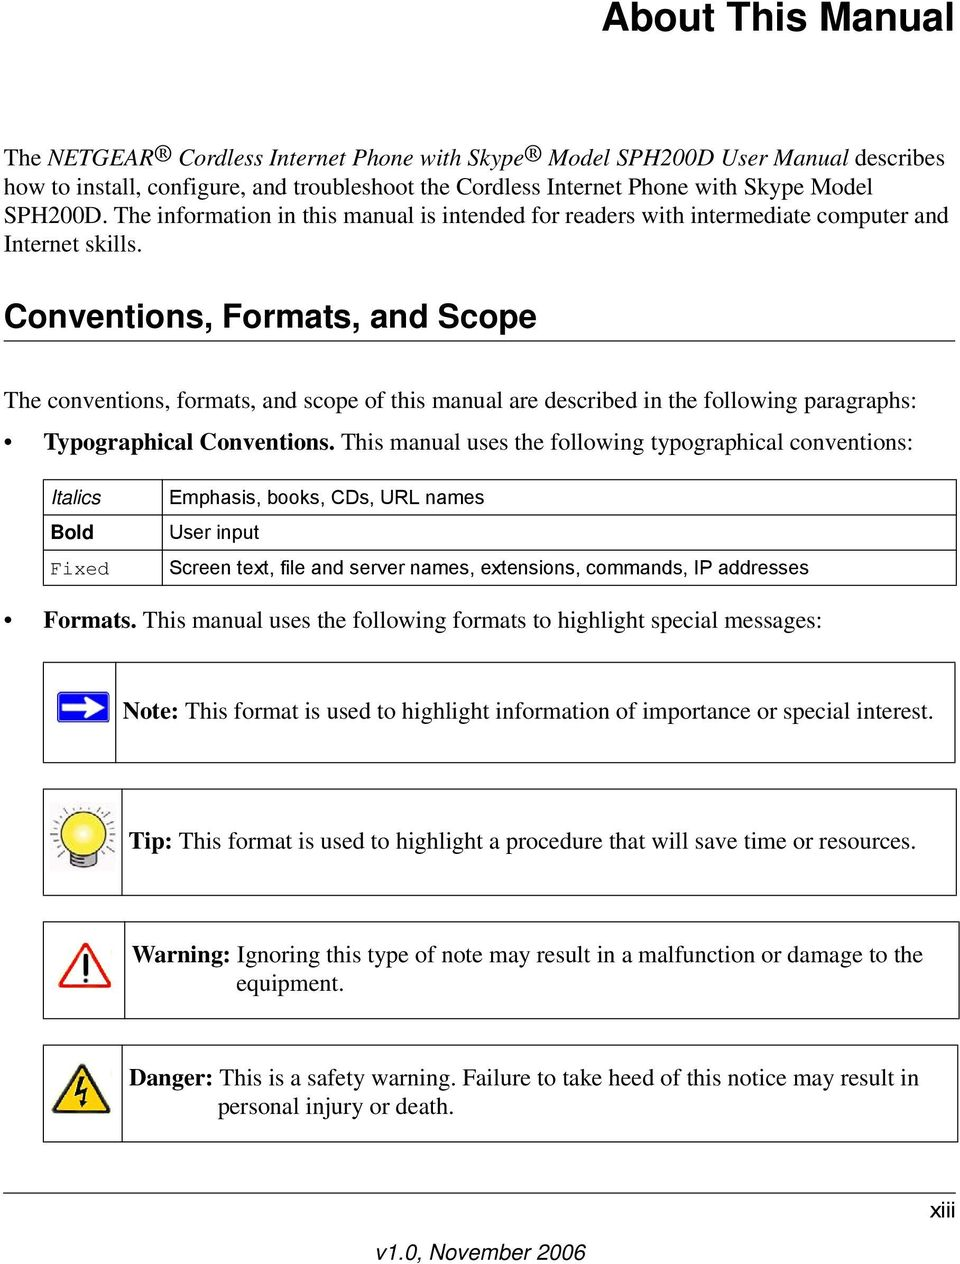 Conventions, Formats, and Scope The conventions, formats, and scope of this manual are described in the following paragraphs: Typographical Conventions.